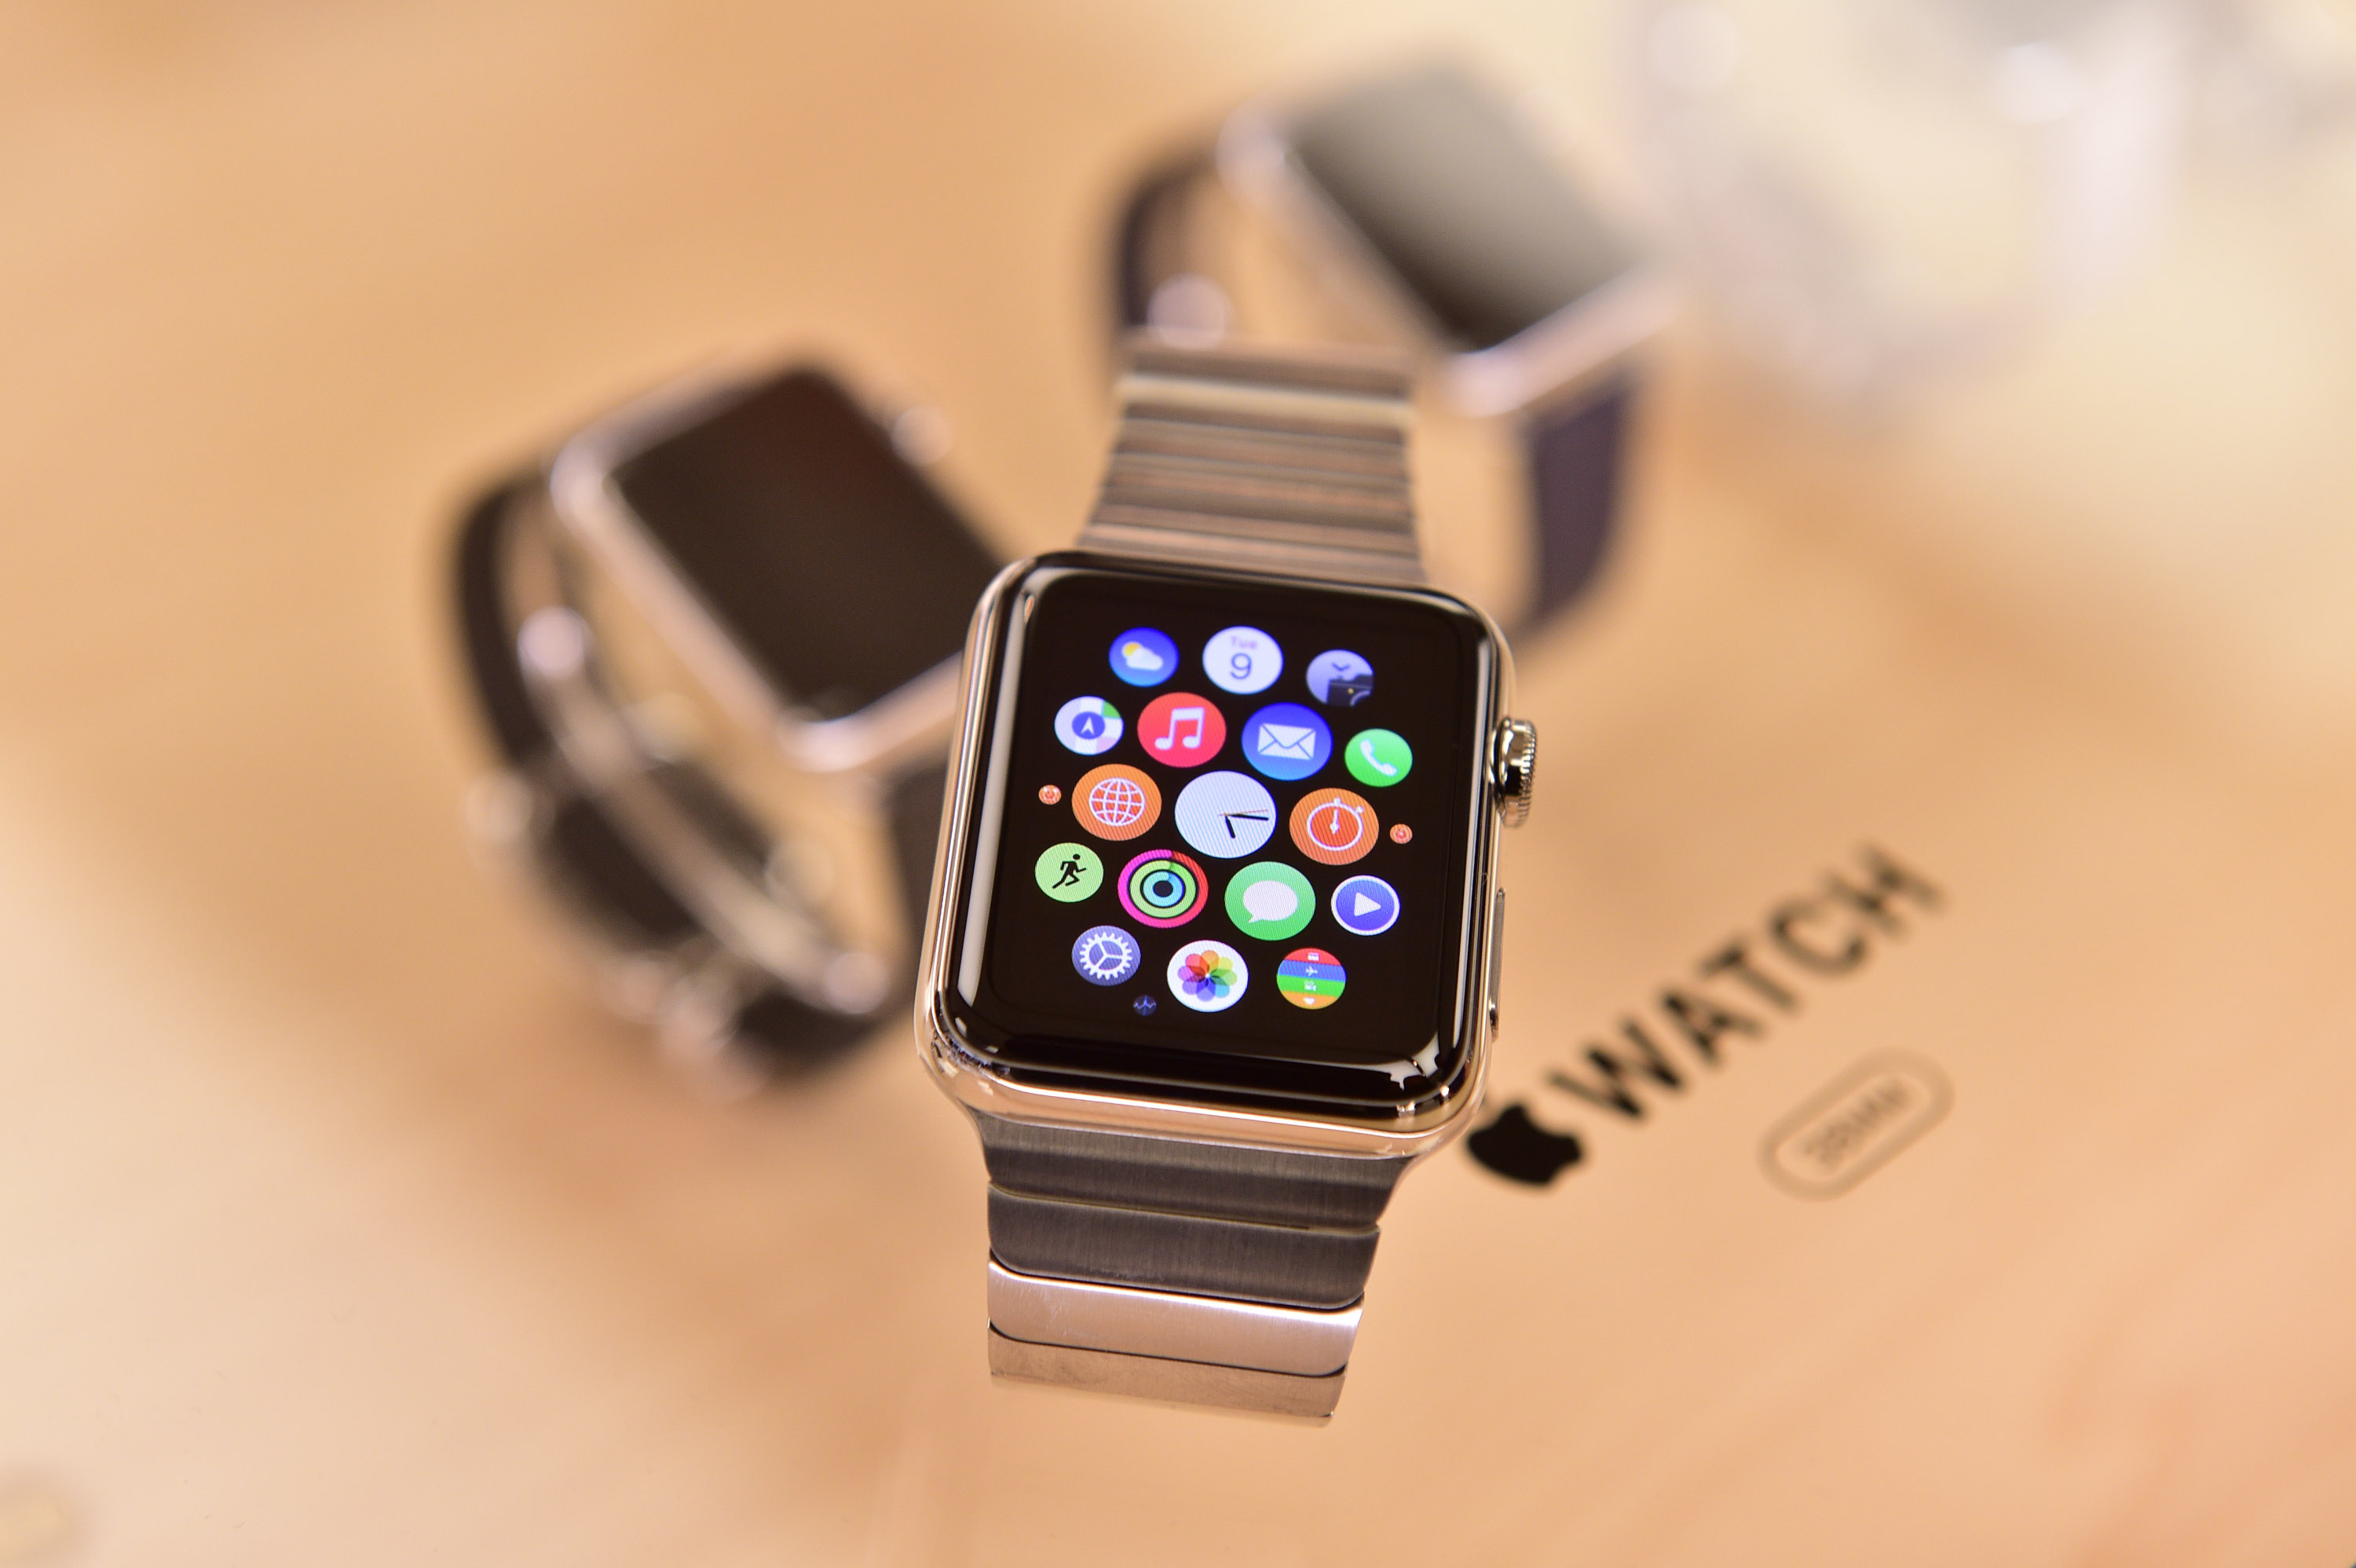 The Apple Watch, officially released on April 24, 2015. The sport model starts at $349. The mid-tier Apple Watch starts at $499, while the Apple Watch Edition starts at $10,000.